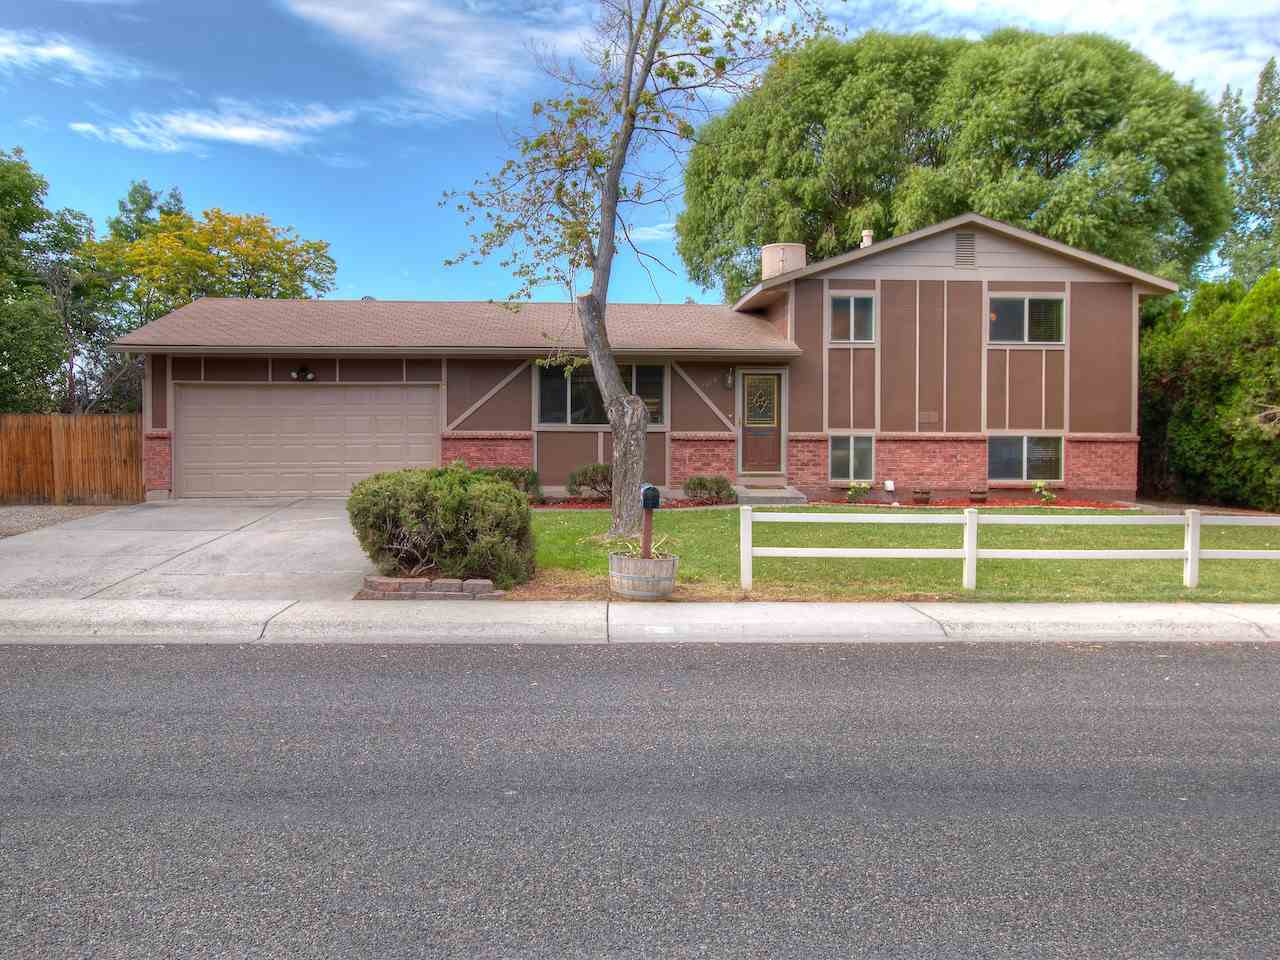 2919 F 1/4 Road, Grand Junction, CO 81504